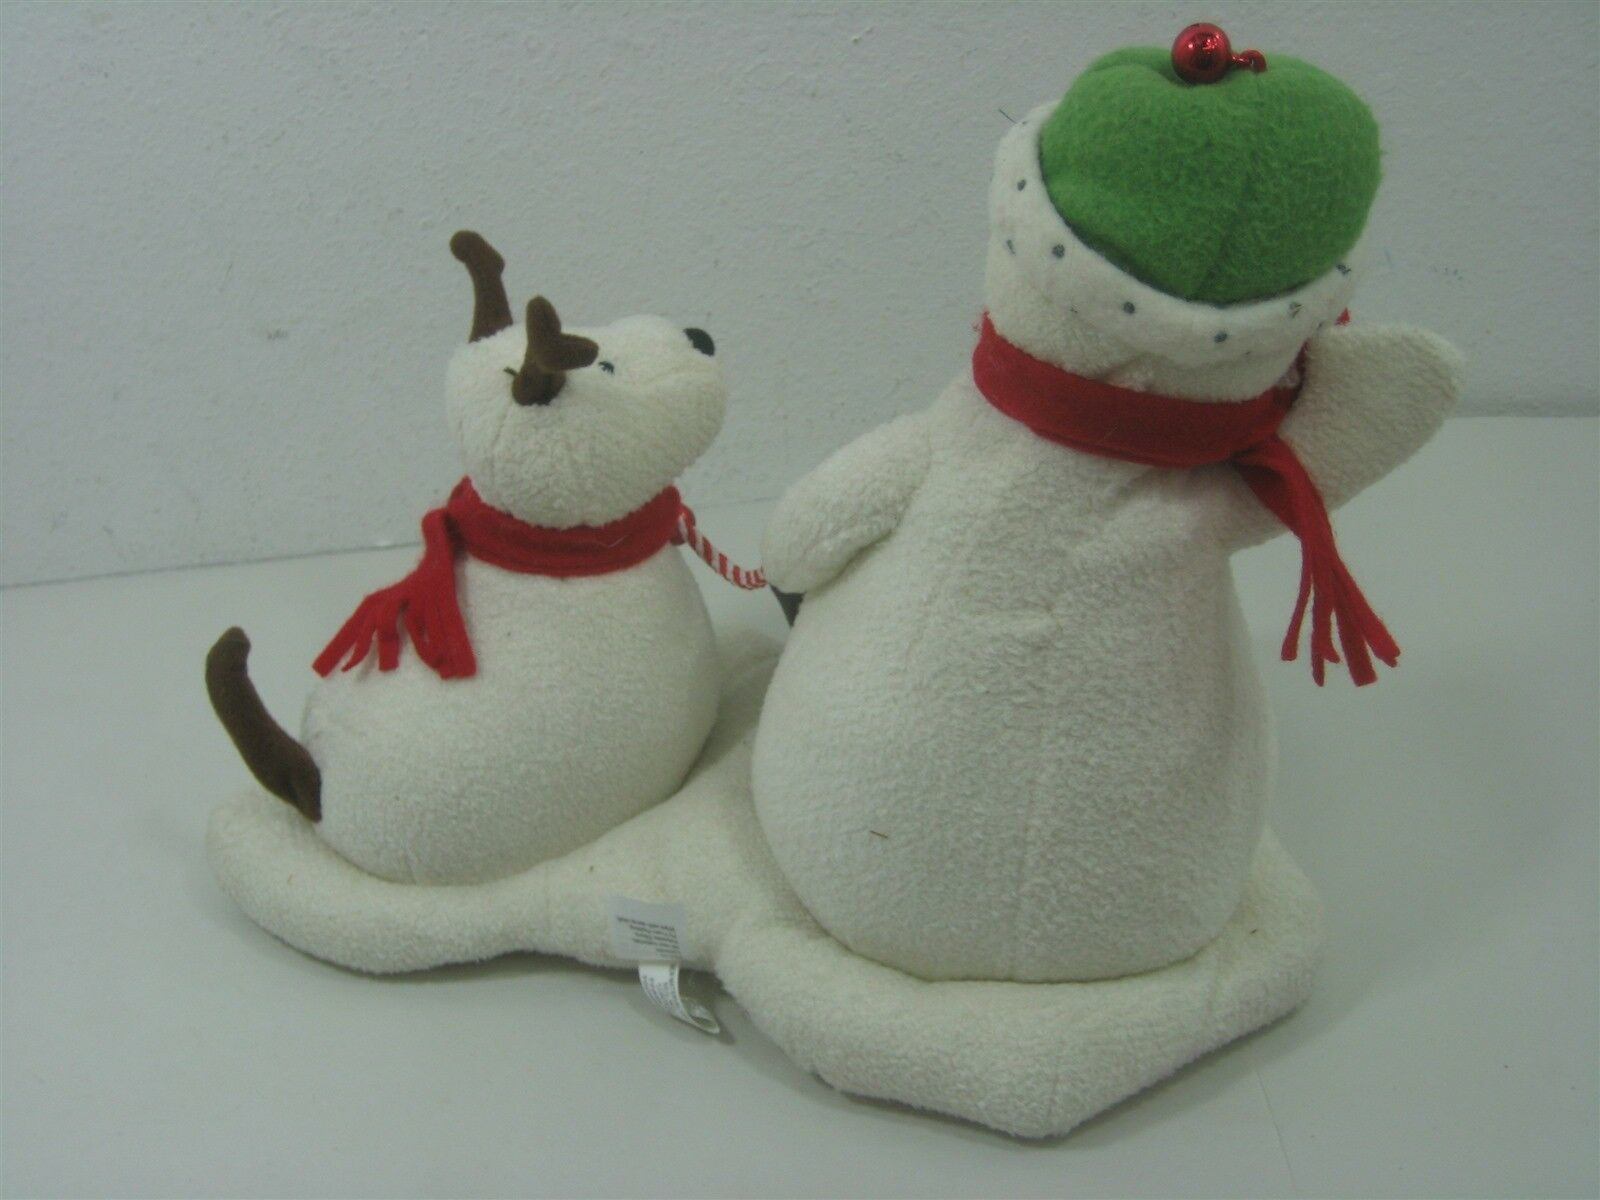 2004 Hallmark Jingle Pals Plush Snowman with Dog Animated Sings Jingle Bells image 4